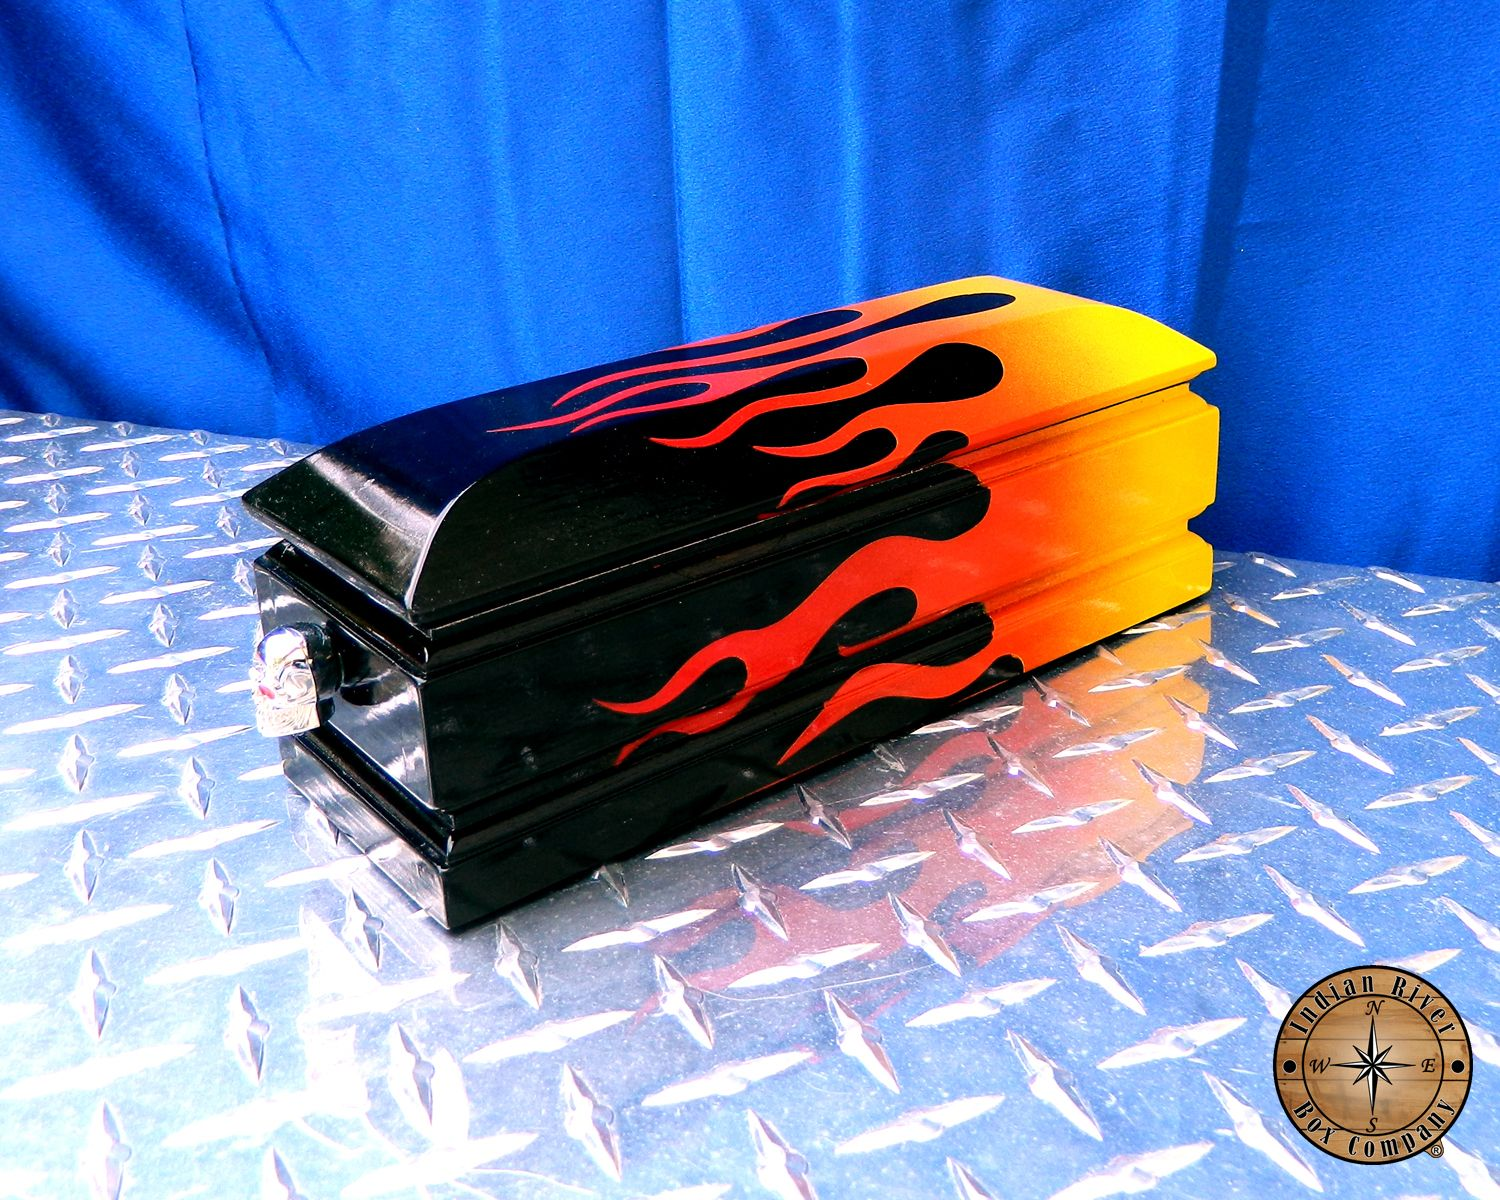 Indian River Box Company Coffin Box with old school hot rod flames ...